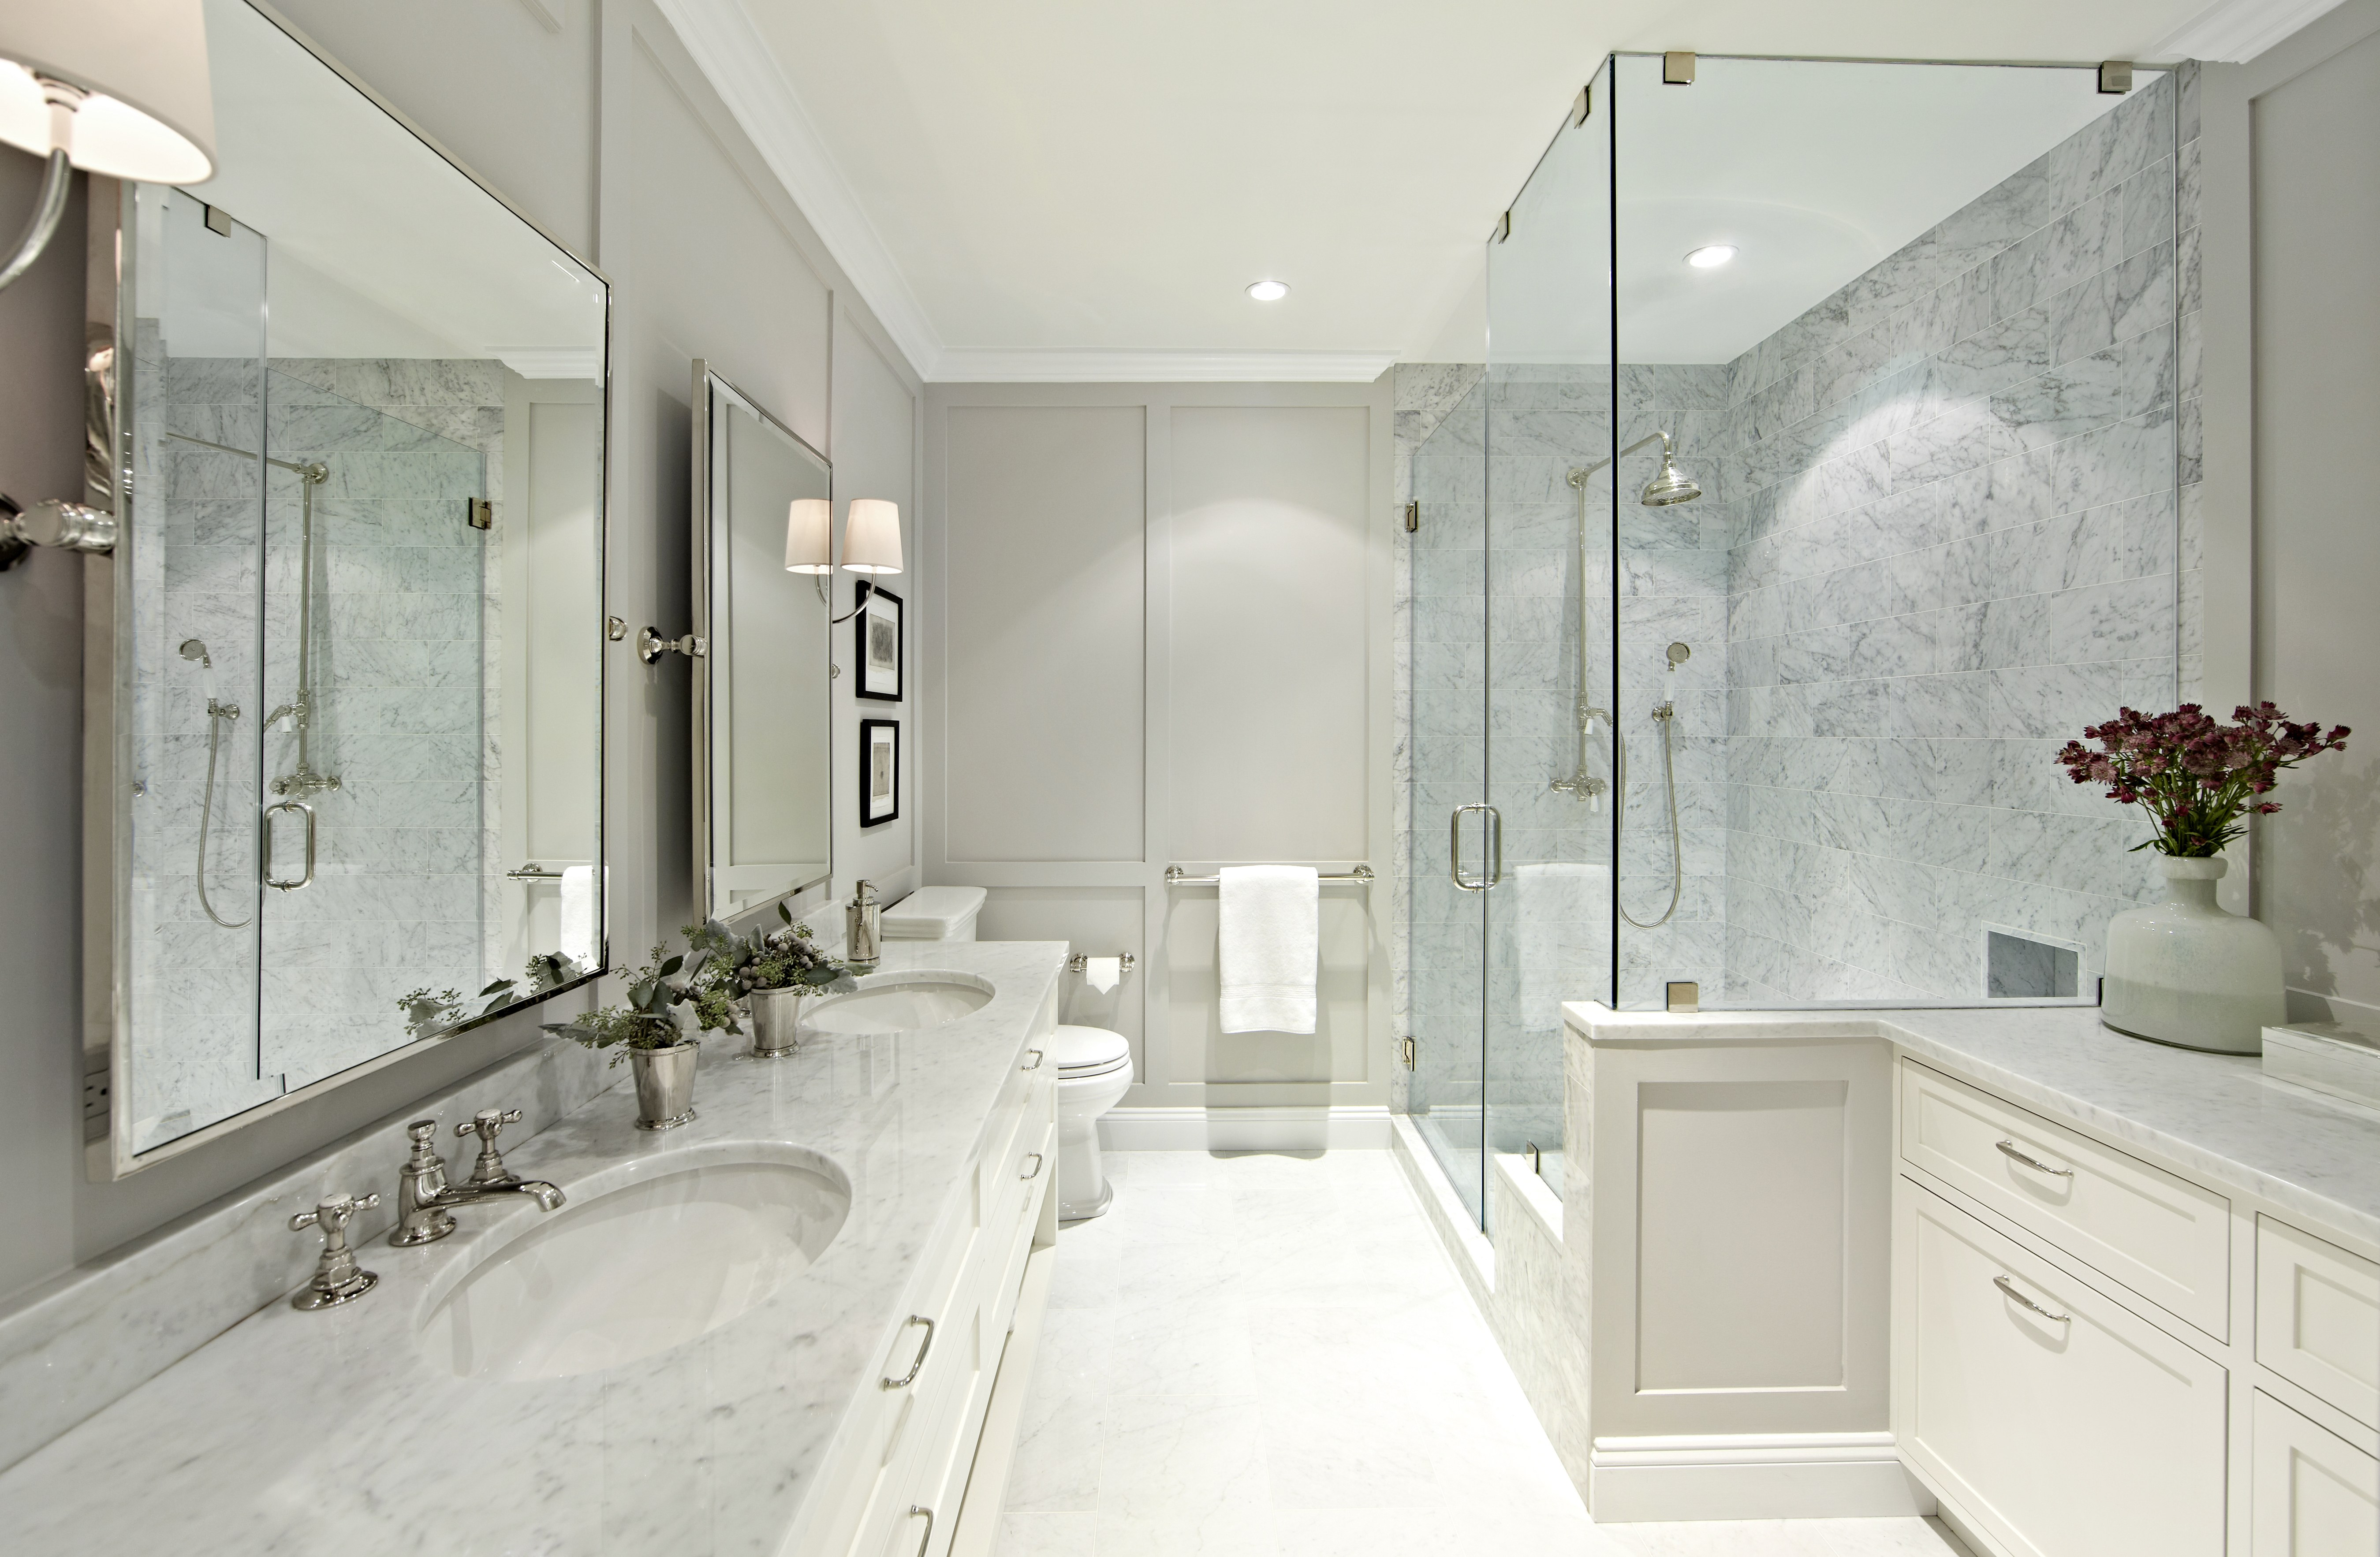 Toronto Plumbing Services, Including Pipe Replacements By